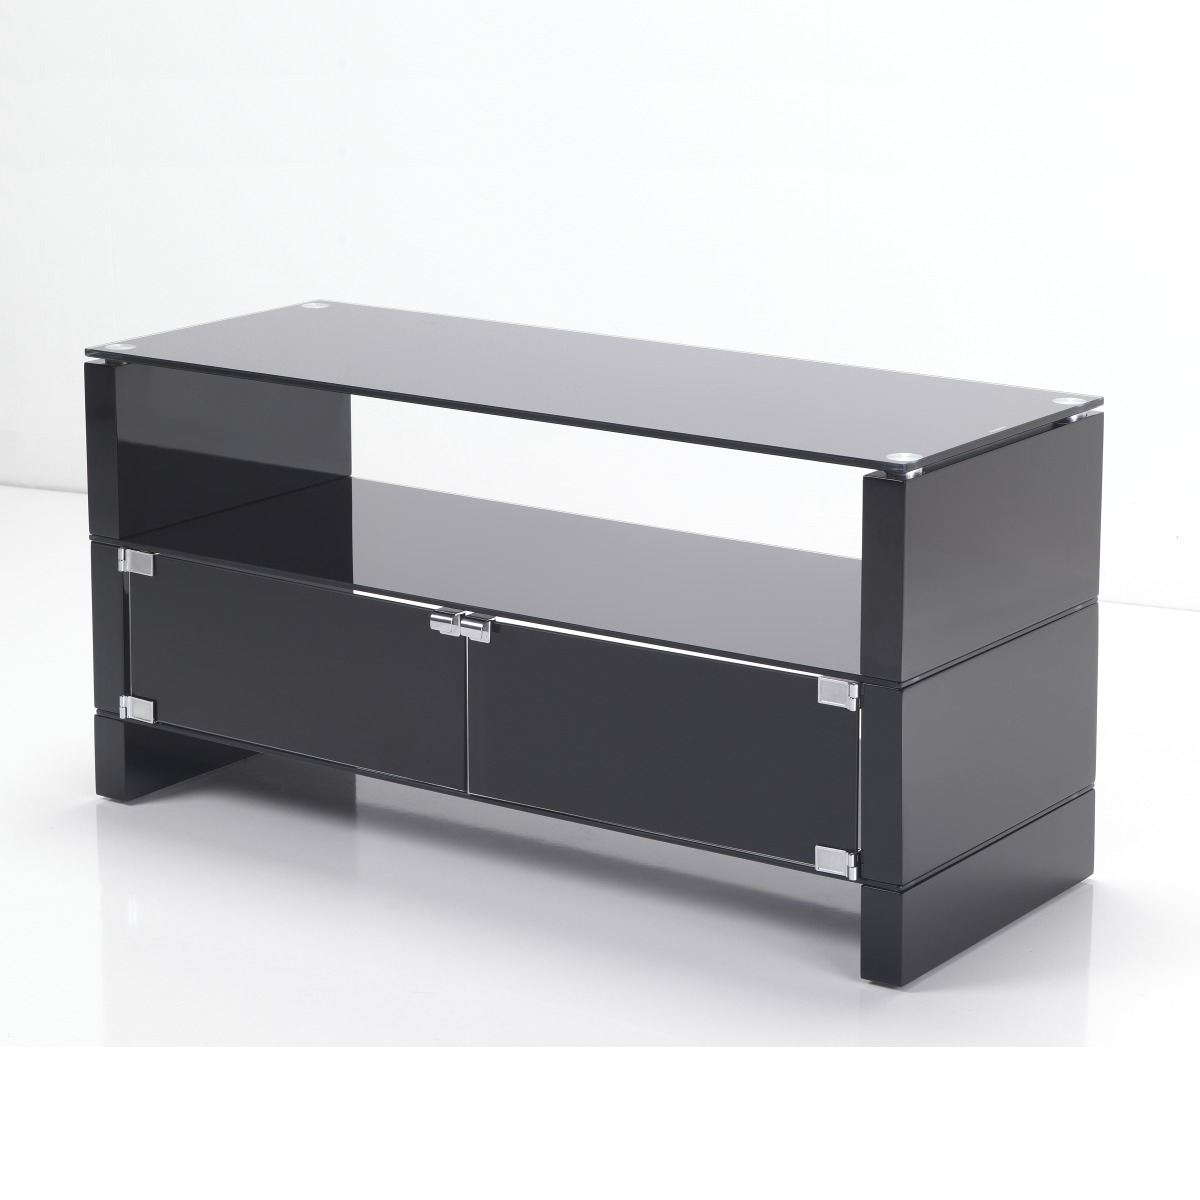 black glass flat screen tv stand cabinets 32 40 inch ebay. Black Bedroom Furniture Sets. Home Design Ideas